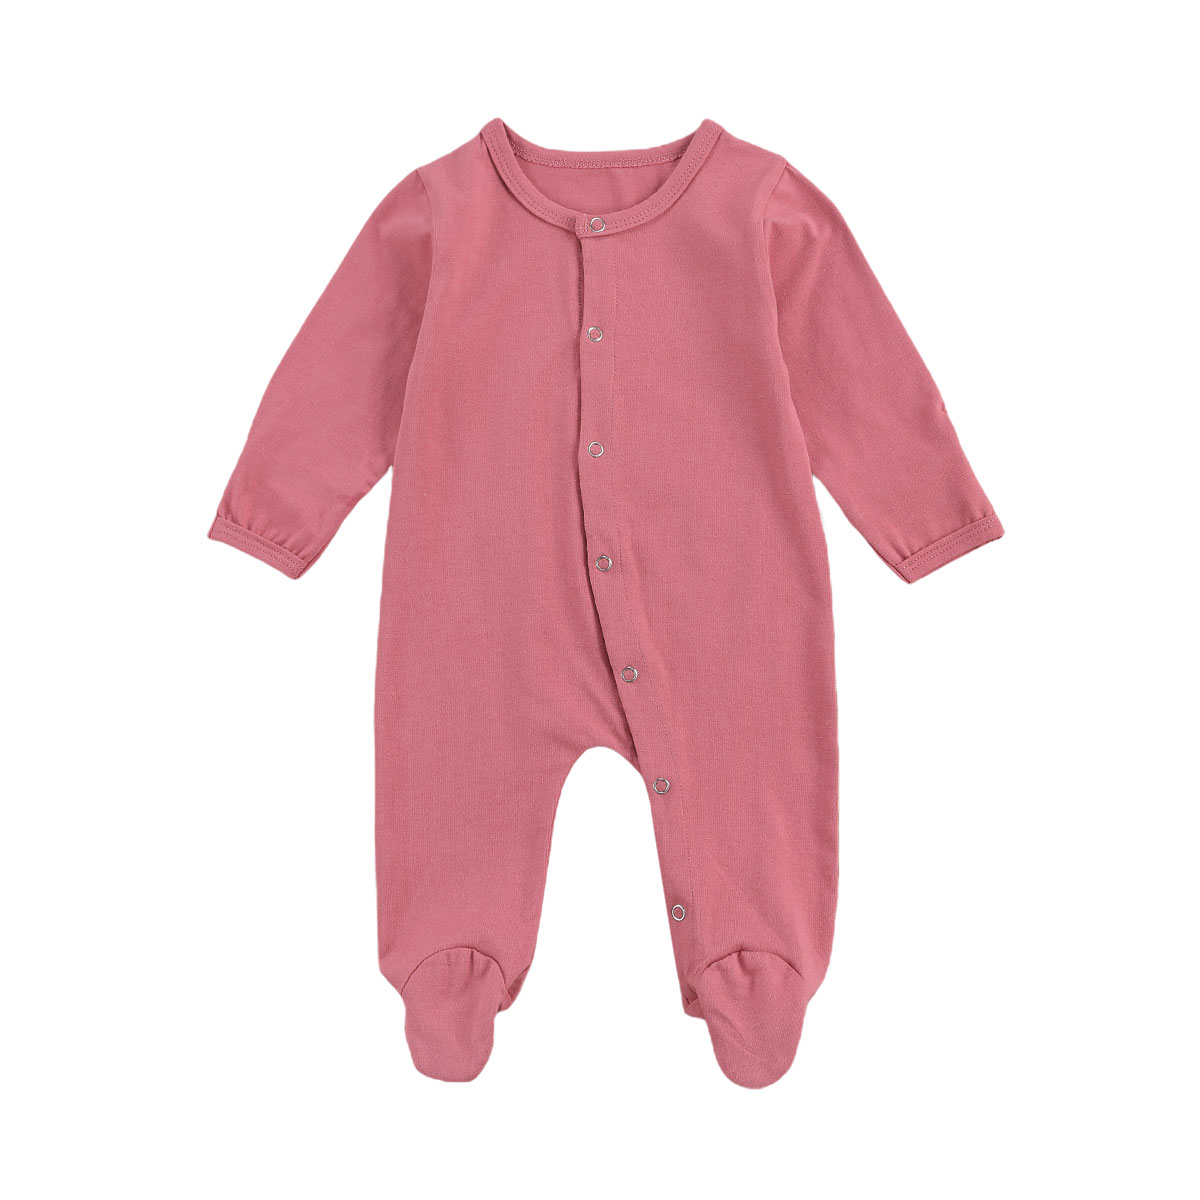 Newborn Baby Girls Boys Footies Rompers Solid Long Sleeve Button Autumn Winter Jumpsuits 0-12M